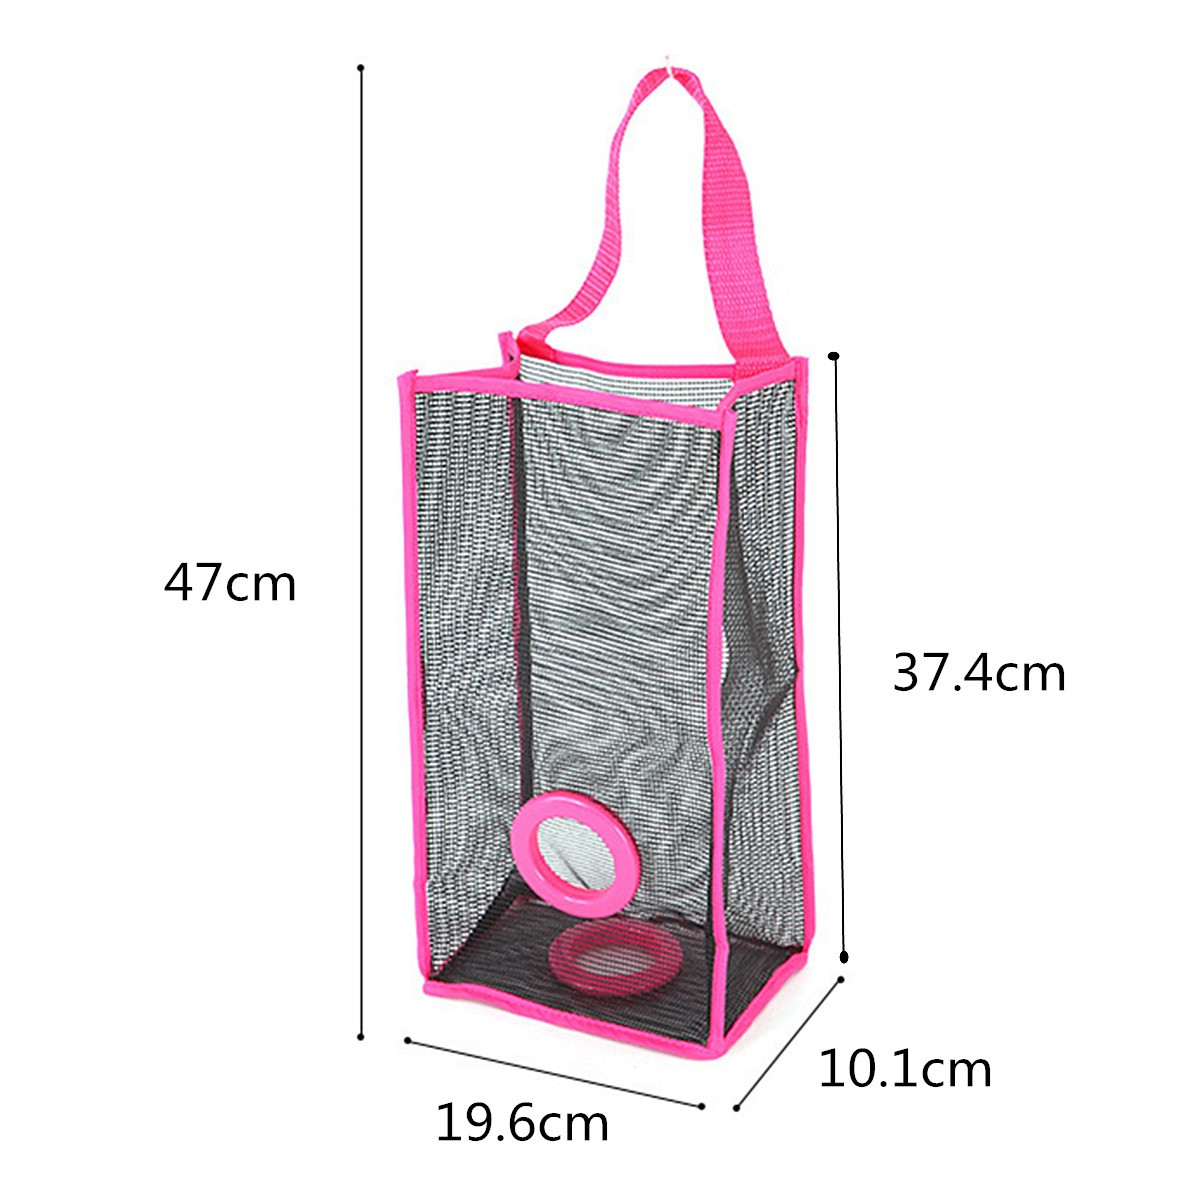 Kitchen-Plastic-Garbage-Storage-Bag-Pouch-Practical-Breathable-Mesh-Wall-Hanging